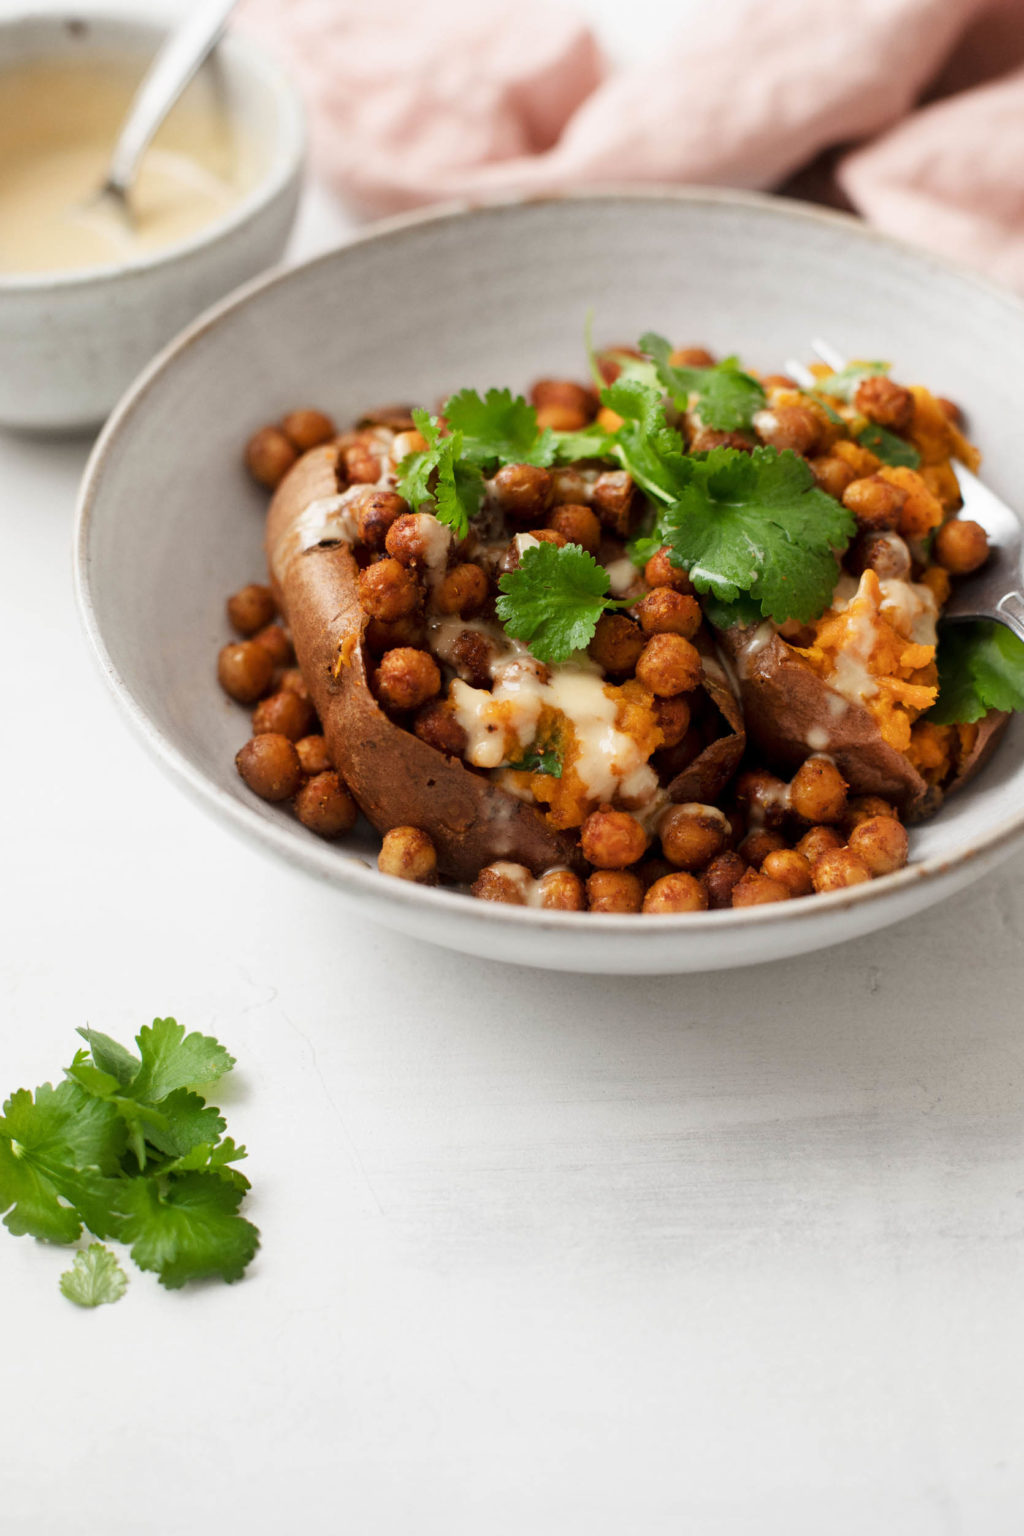 A small bowl holds a baked sweet potato that's been stuffed with spiced chickpeas, herbs, and sauce.